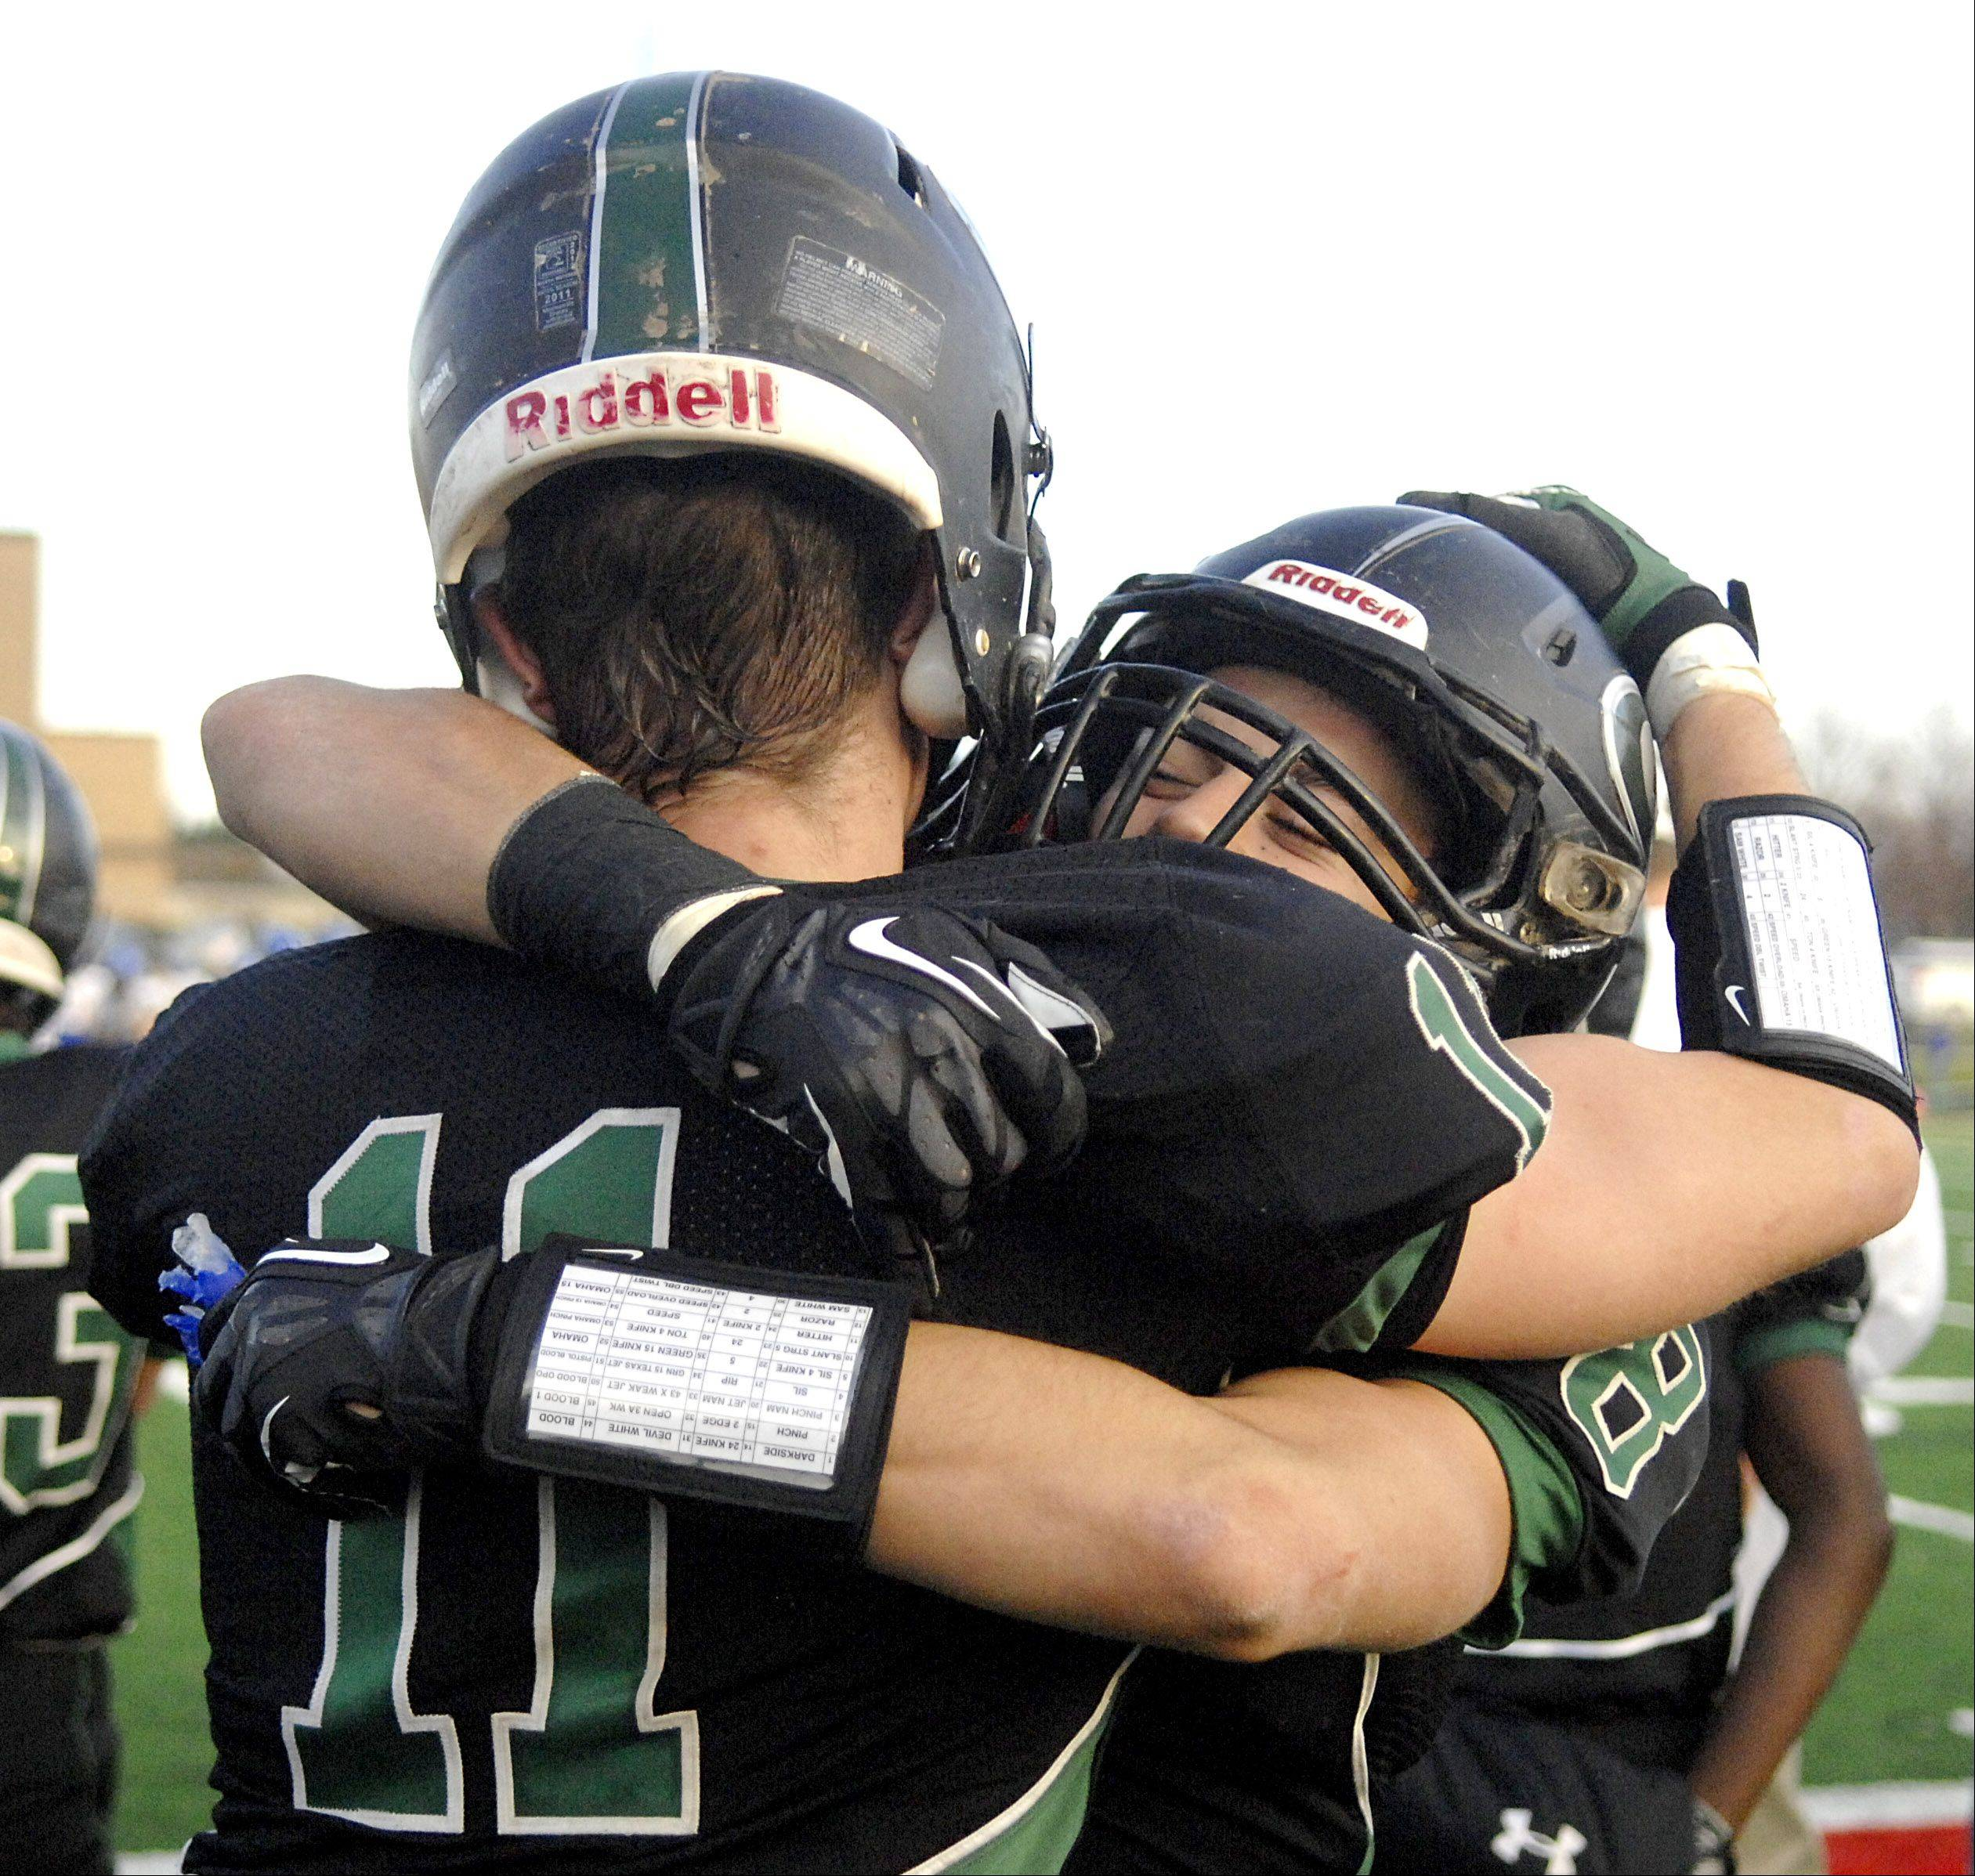 Glenbard West's Grant Greeno (11) gets a hug from teammate Hayden Carlson after their 7A semi final victory over Lake Zurich on Saturday, Nov. 17.